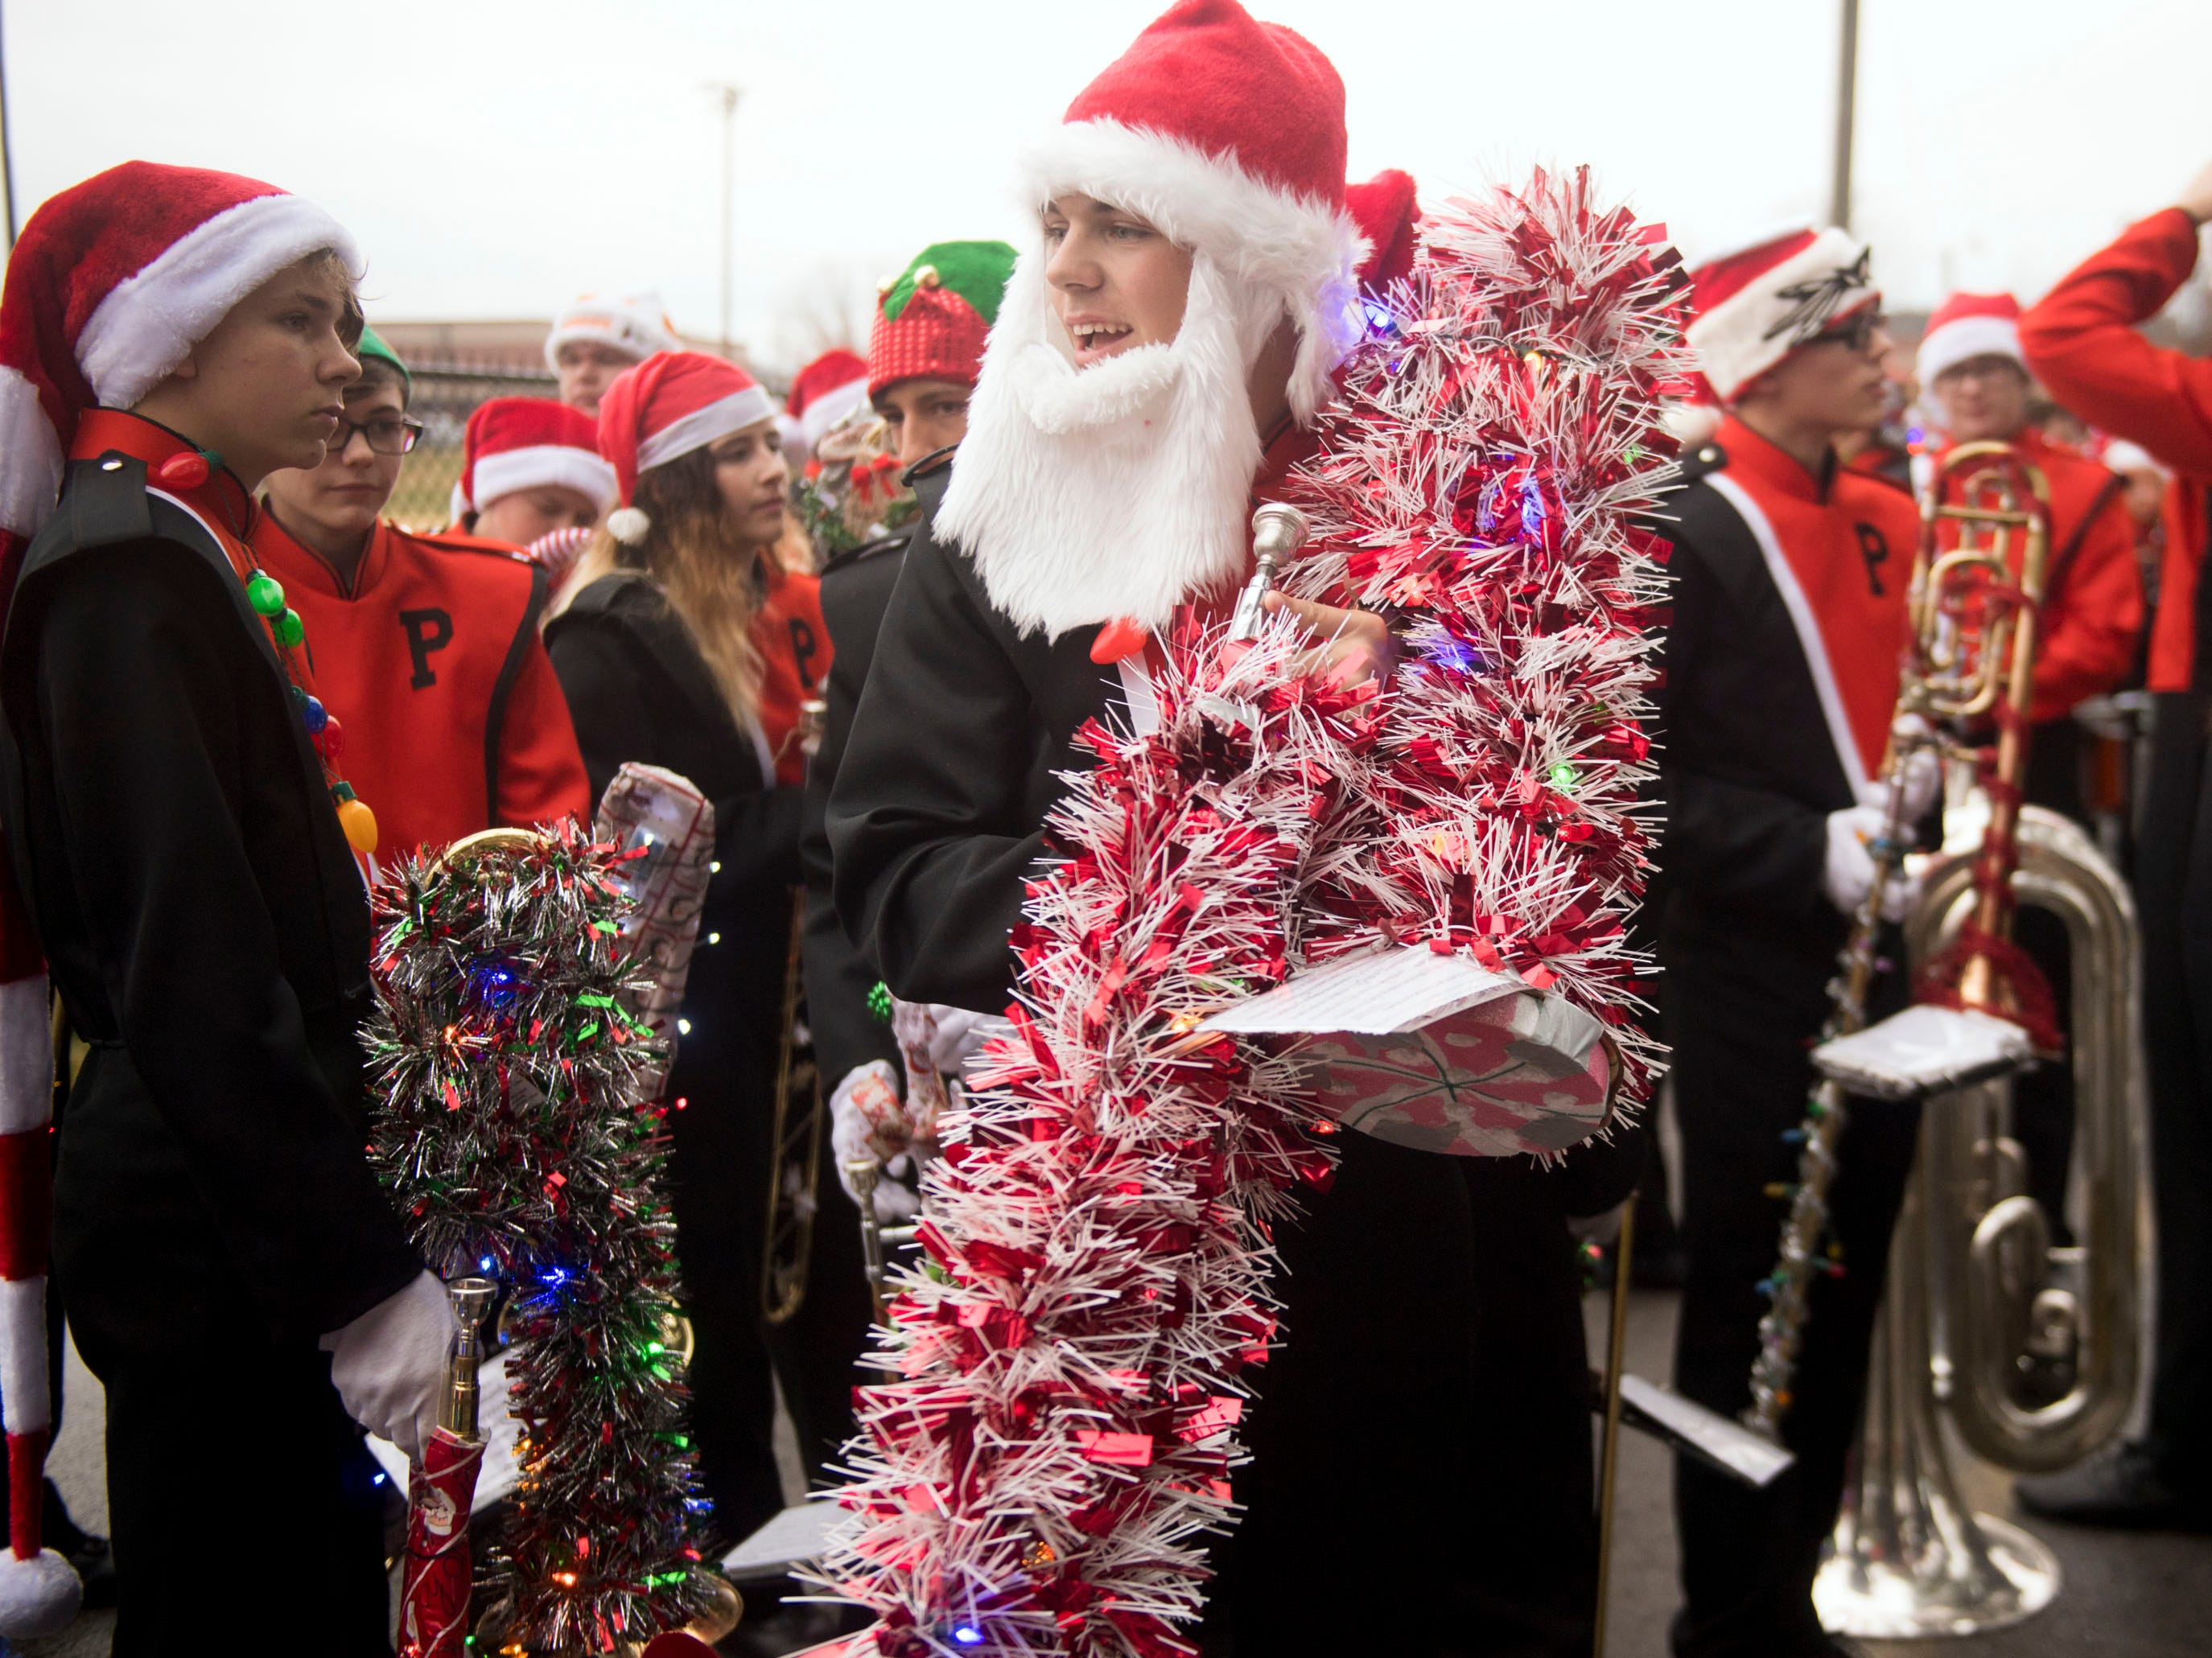 Members for the Powell High School Marching Panther Band are ready for the Powell Lions Club Christmas Parade on Saturday, December 1, 2018e